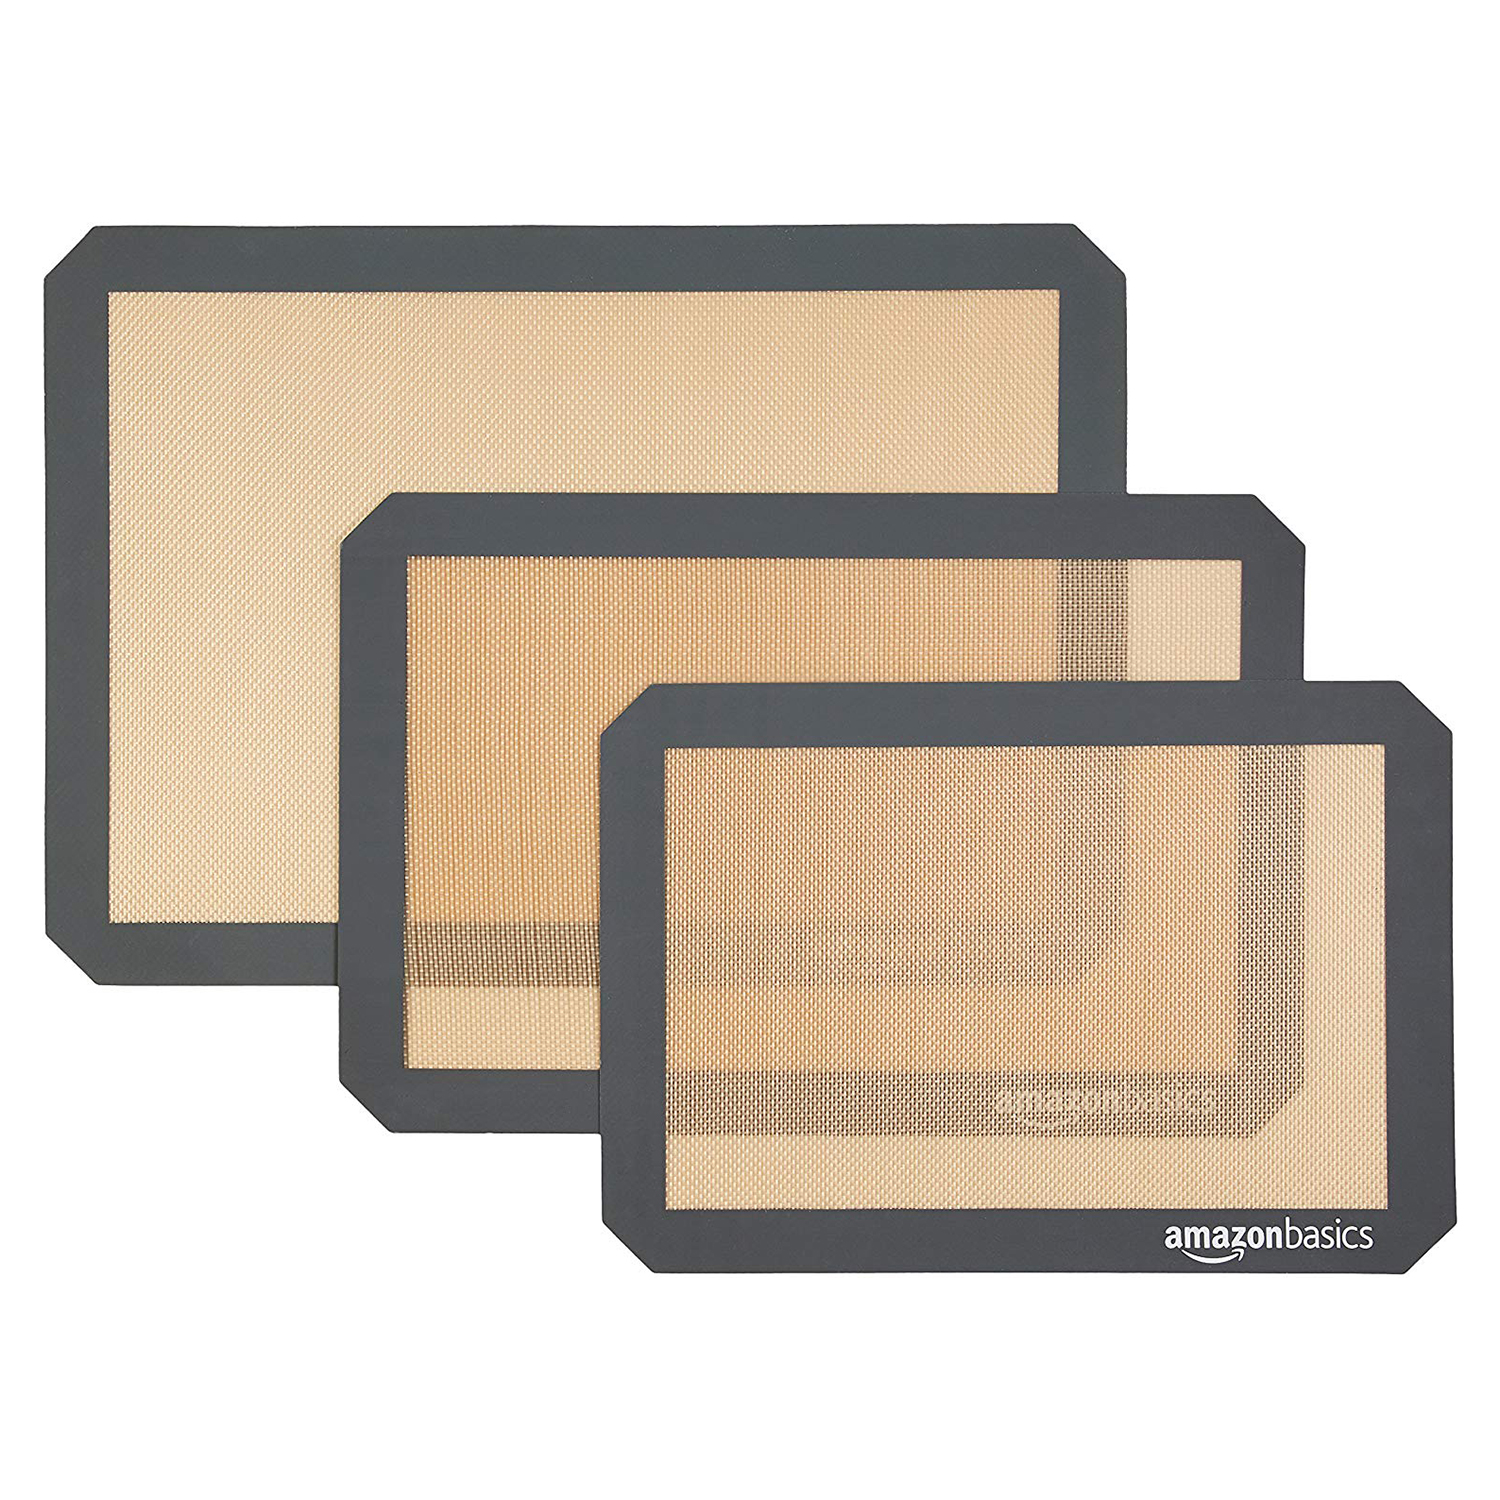 AmazonBasics Silicone Baking Mat Sheet, Set of 3